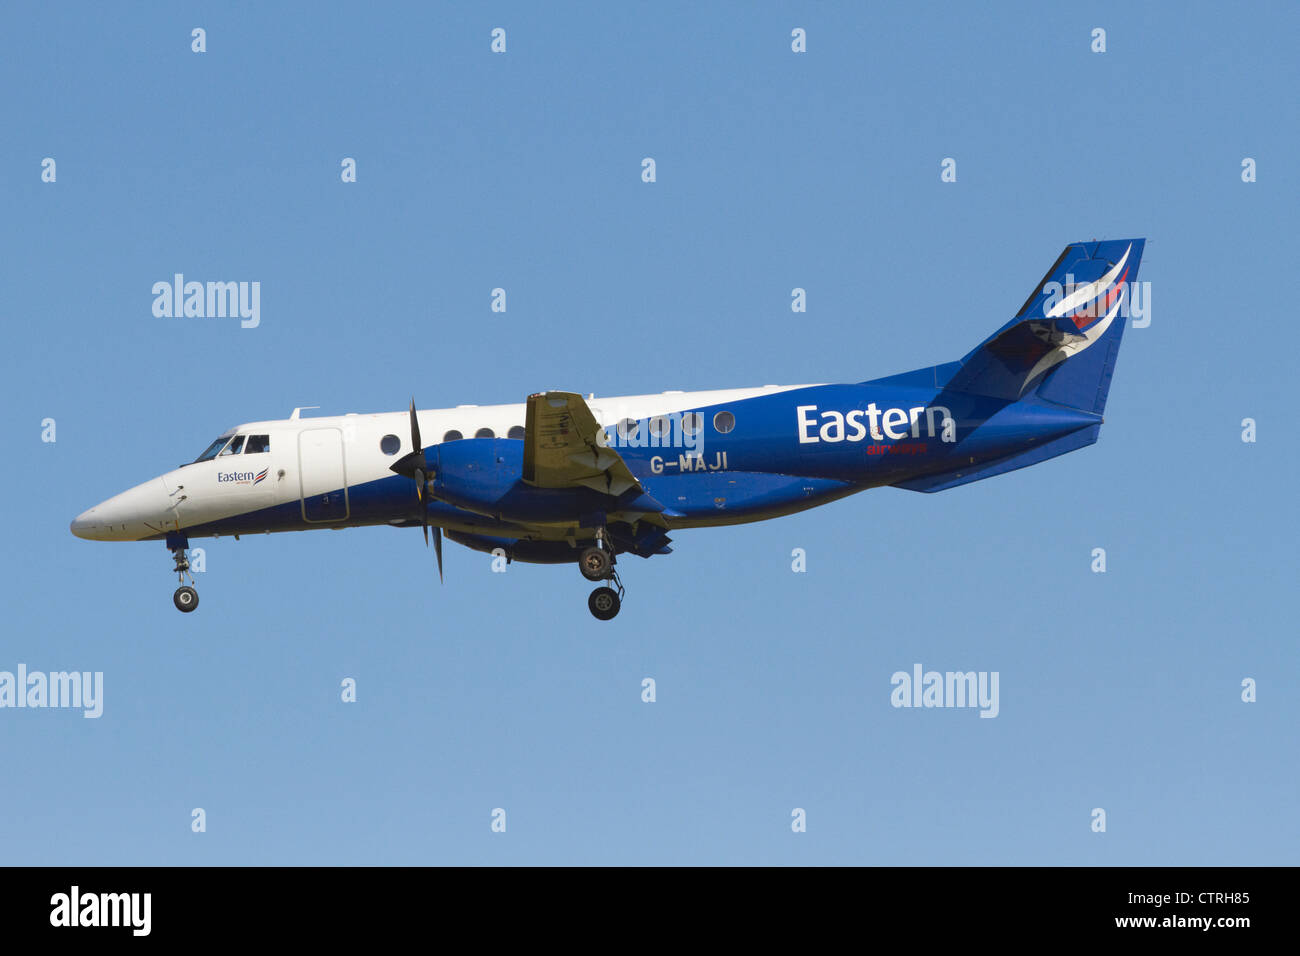 Eastern Airways BAe Jetstream 4102 on final approach Stock Photo